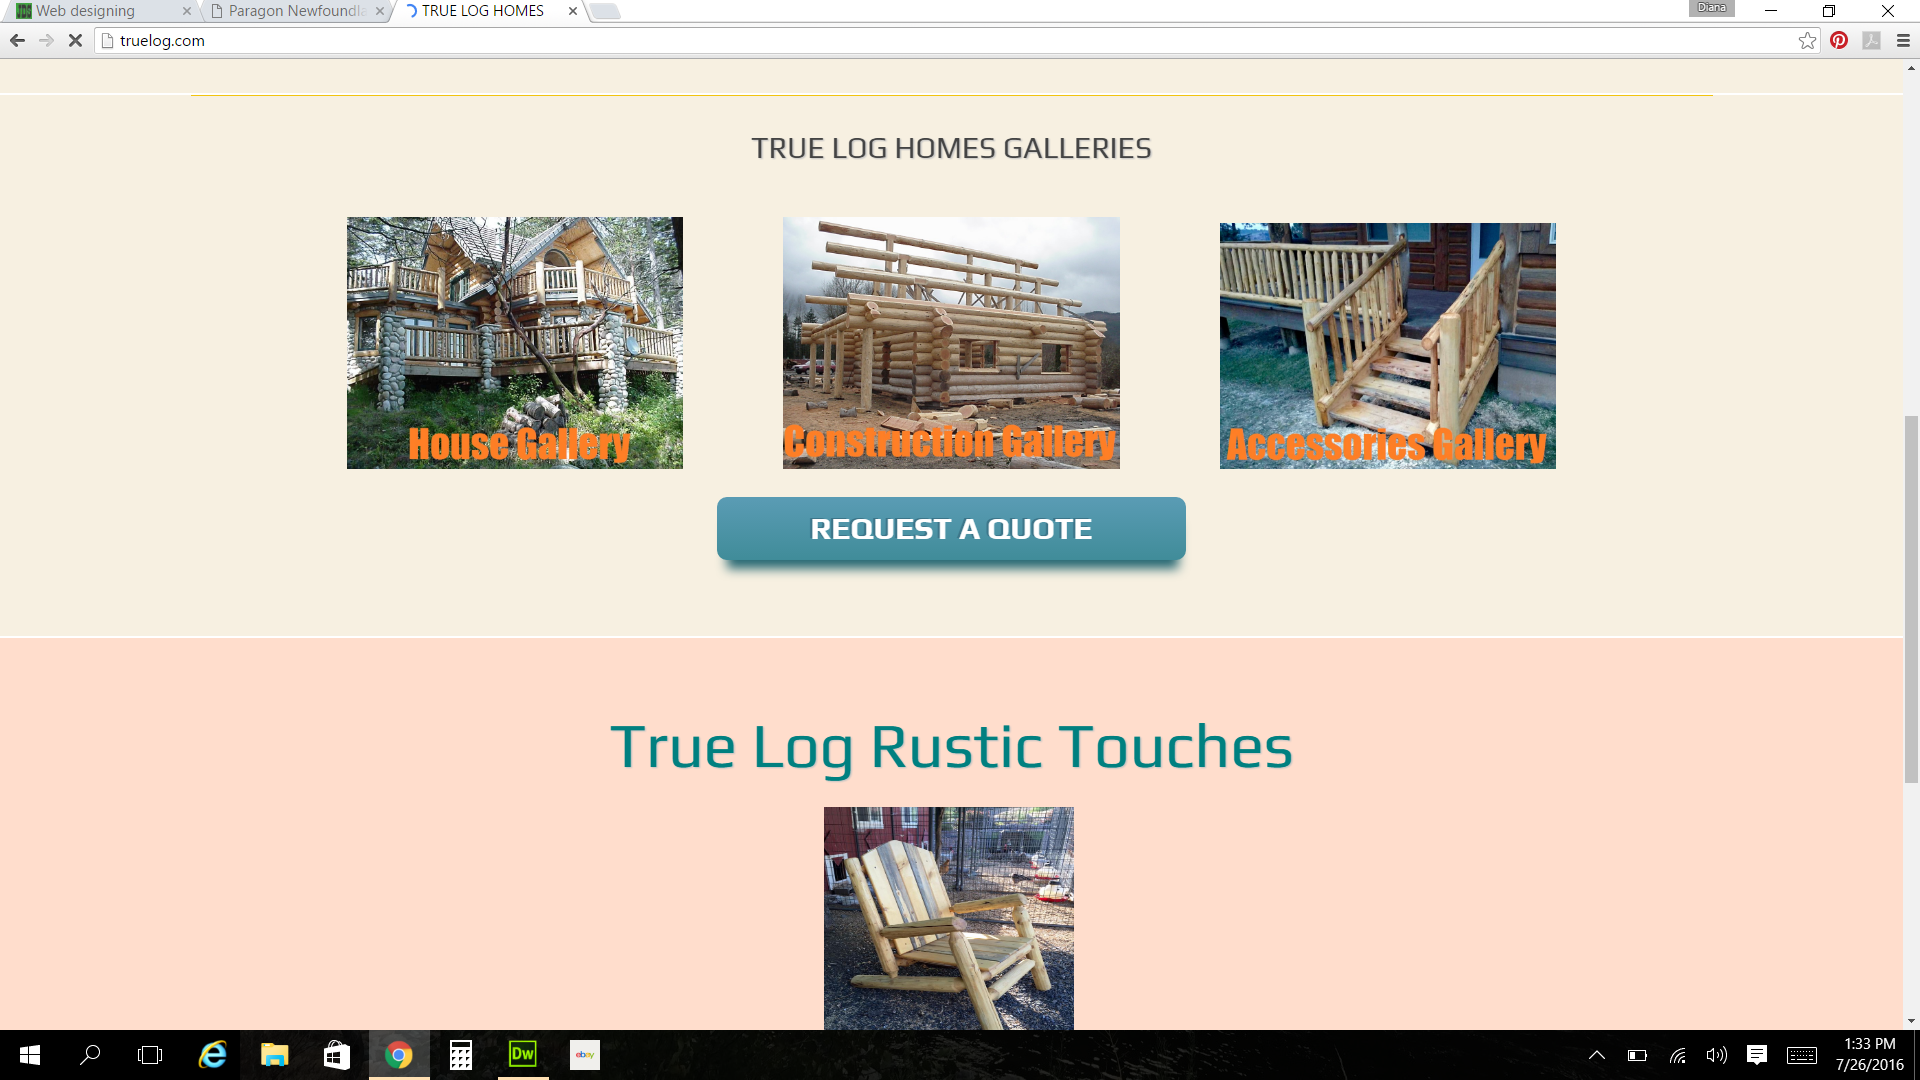 True Log Homes